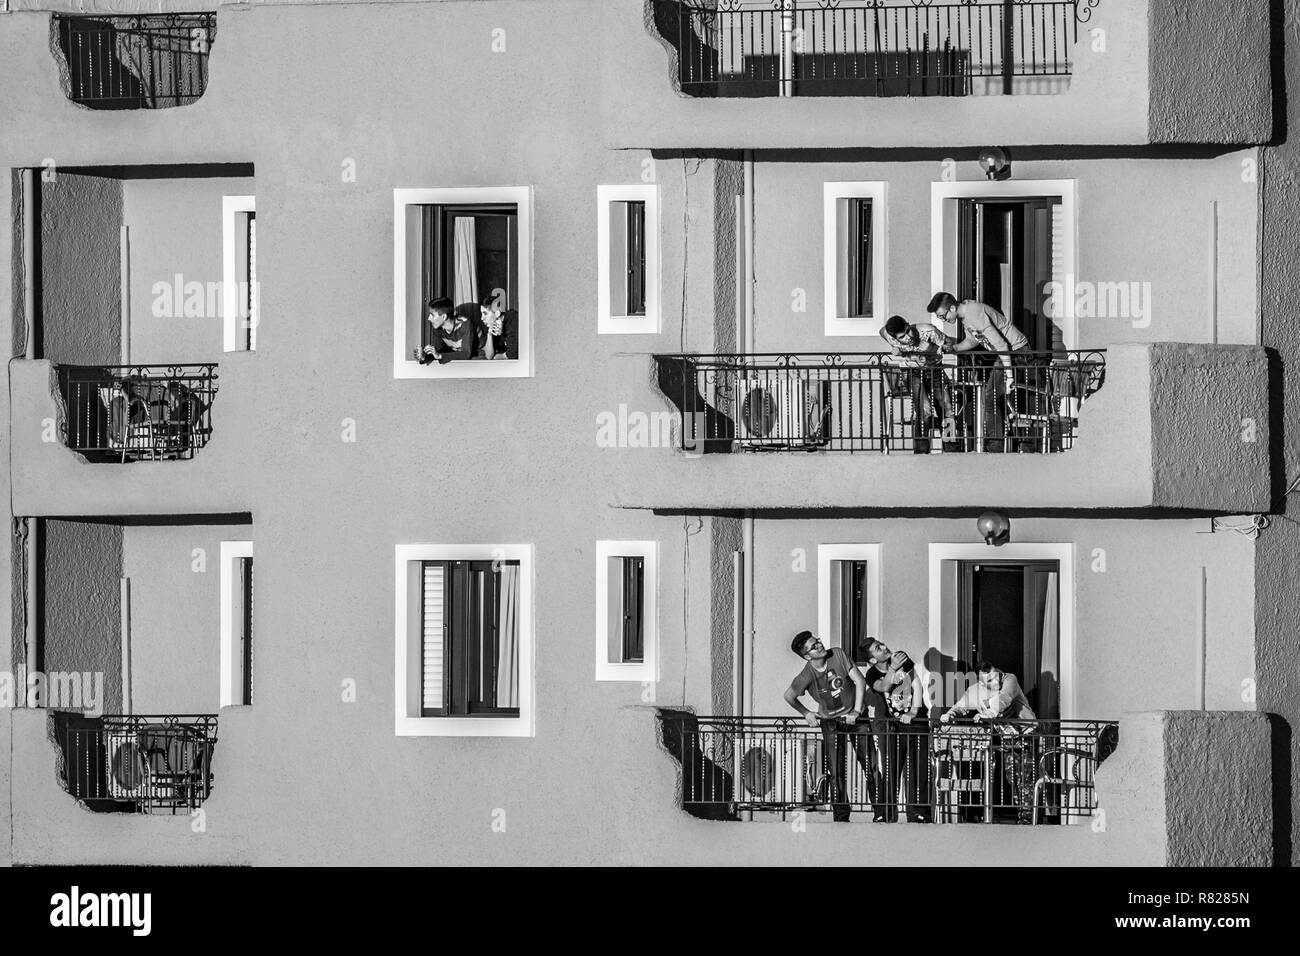 IGOUMENITSA, GREECE - MARCH 2, 2017: Group of young men speak to each other from the balconies and windows of a hotel on the boardwalk of the town as  - Stock Image